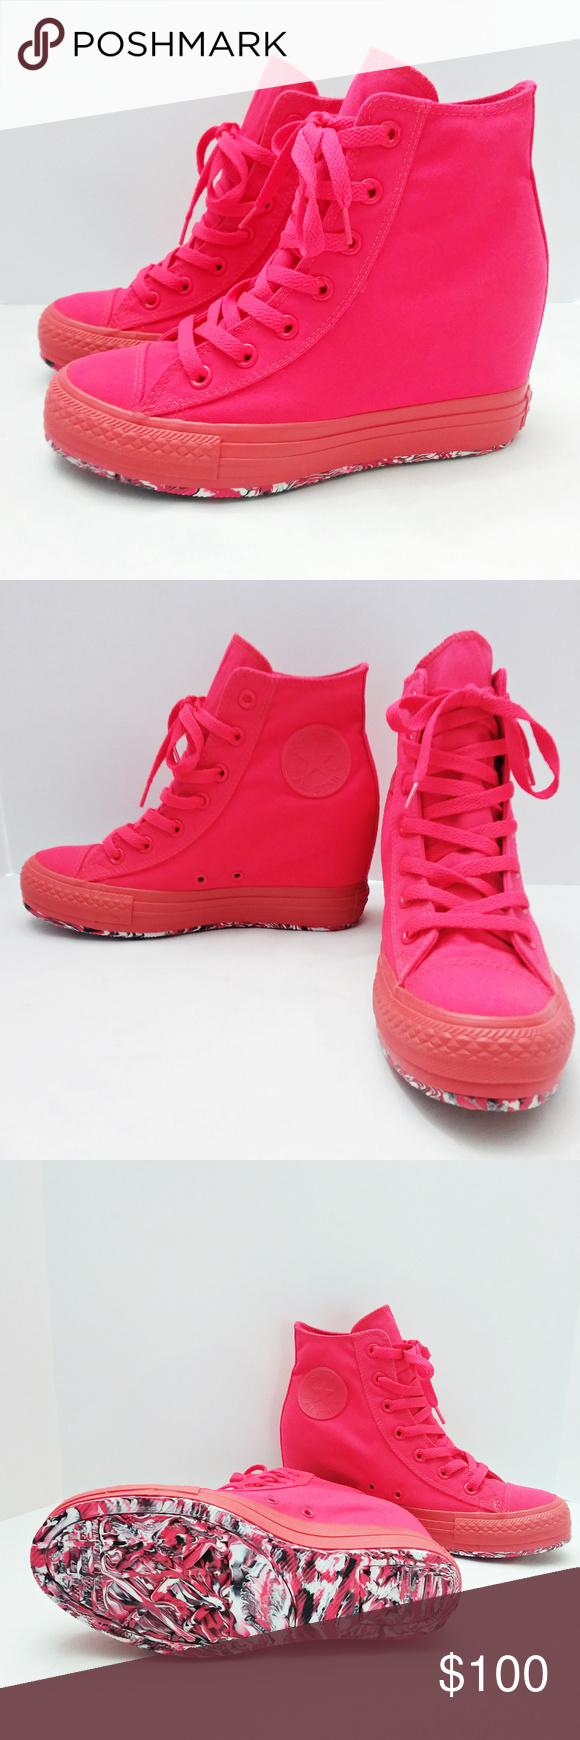 CONVERSE || Neon CTAS Lux Mid [Hidden] Wedge Shoes Brand New